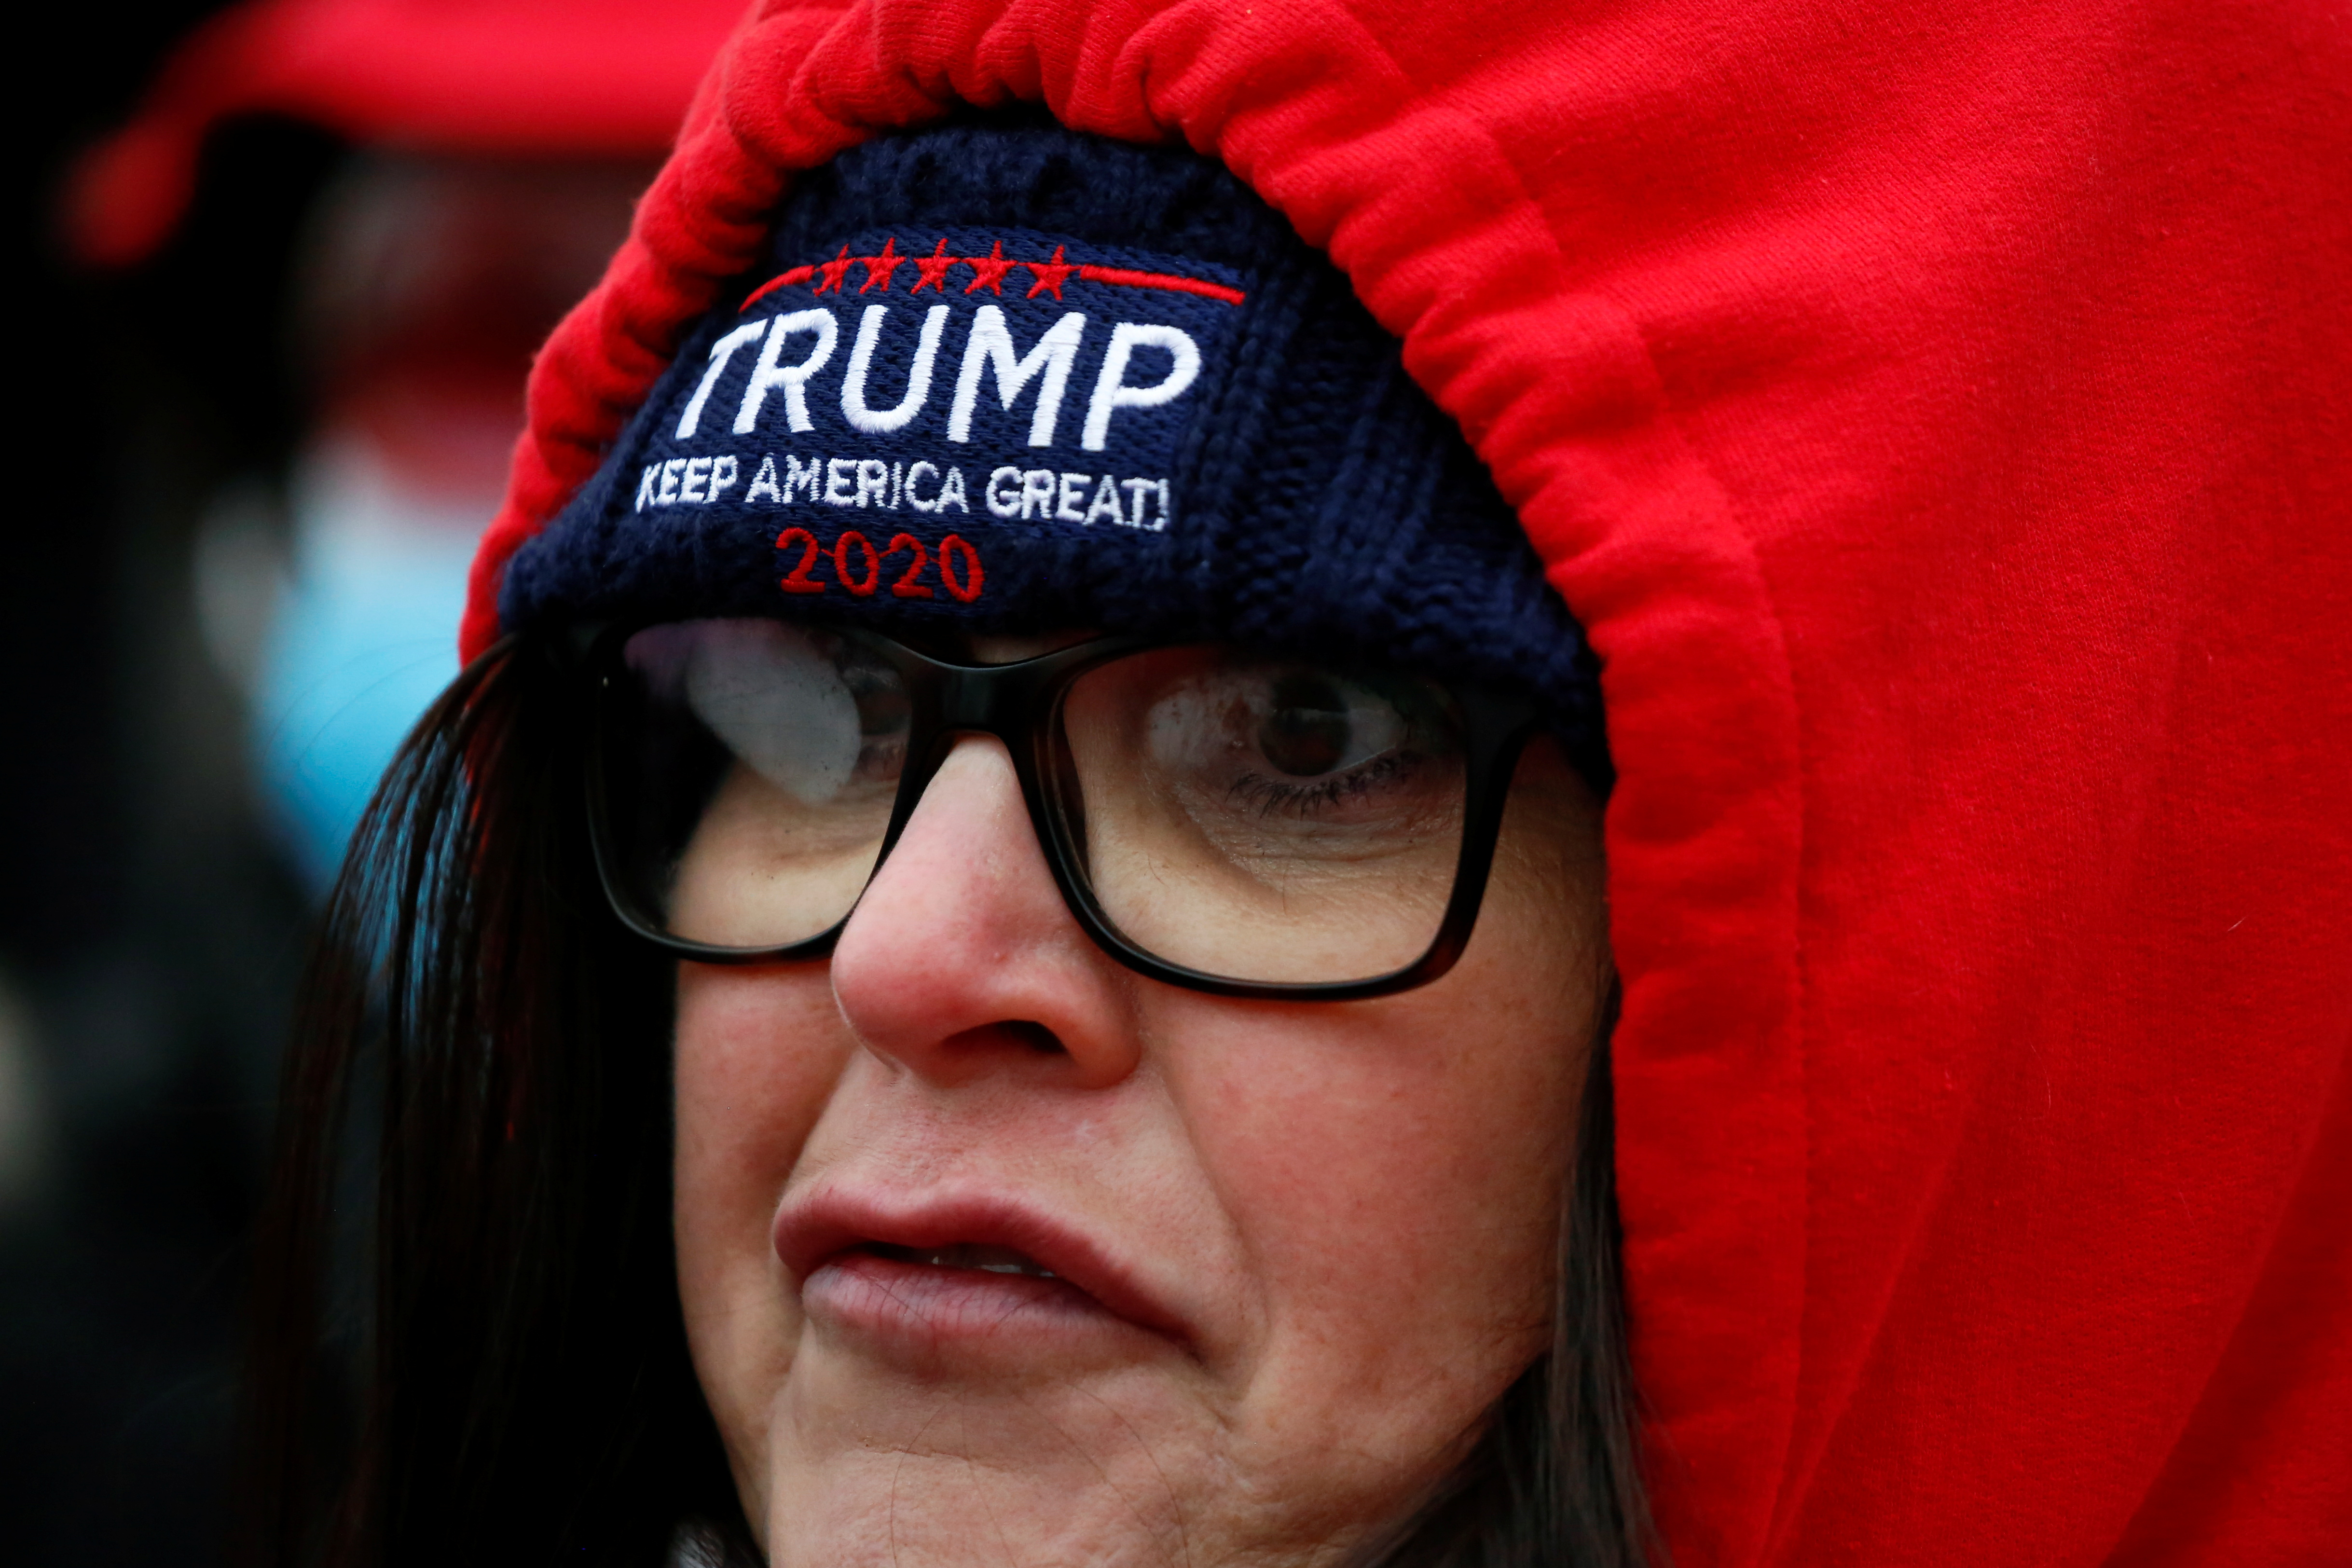 A supporter of U.S. President Donald Trump protests against the certification of the 2020 U.S. presidential election results by the U.S. Congress in front of the U.S. Capitol Building, in Washington, U.S., January 6, 2021. REUTERS/Jim Urquhart